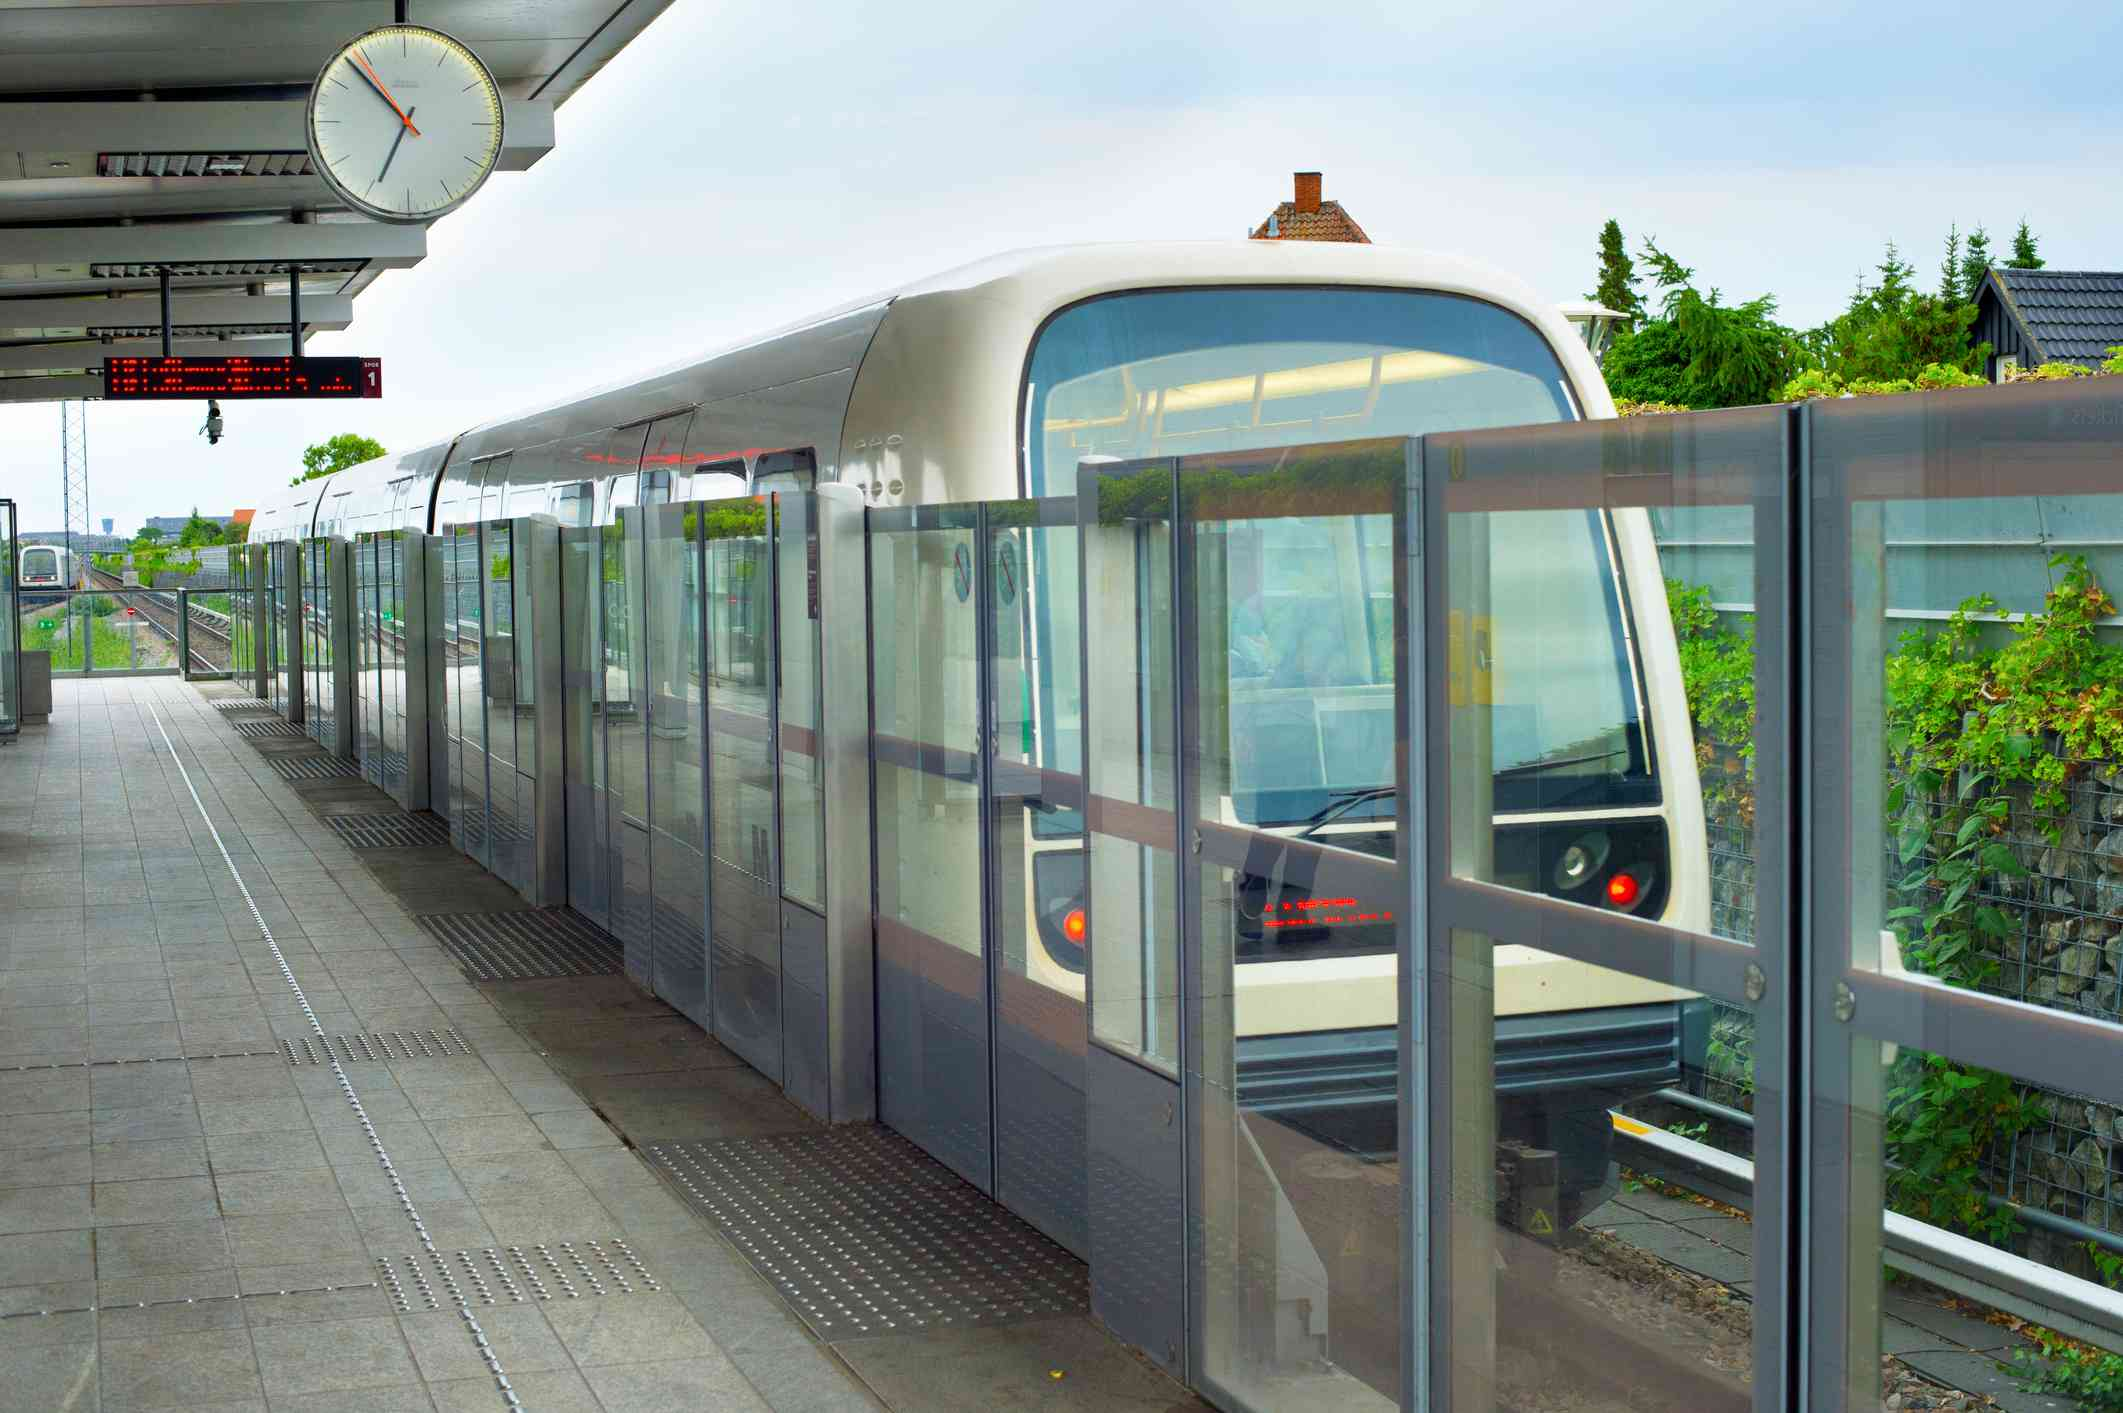 subway train at an outdoor station in Copenhagen next to a clean platform walkway with clear glass gates and a clock under an overhang